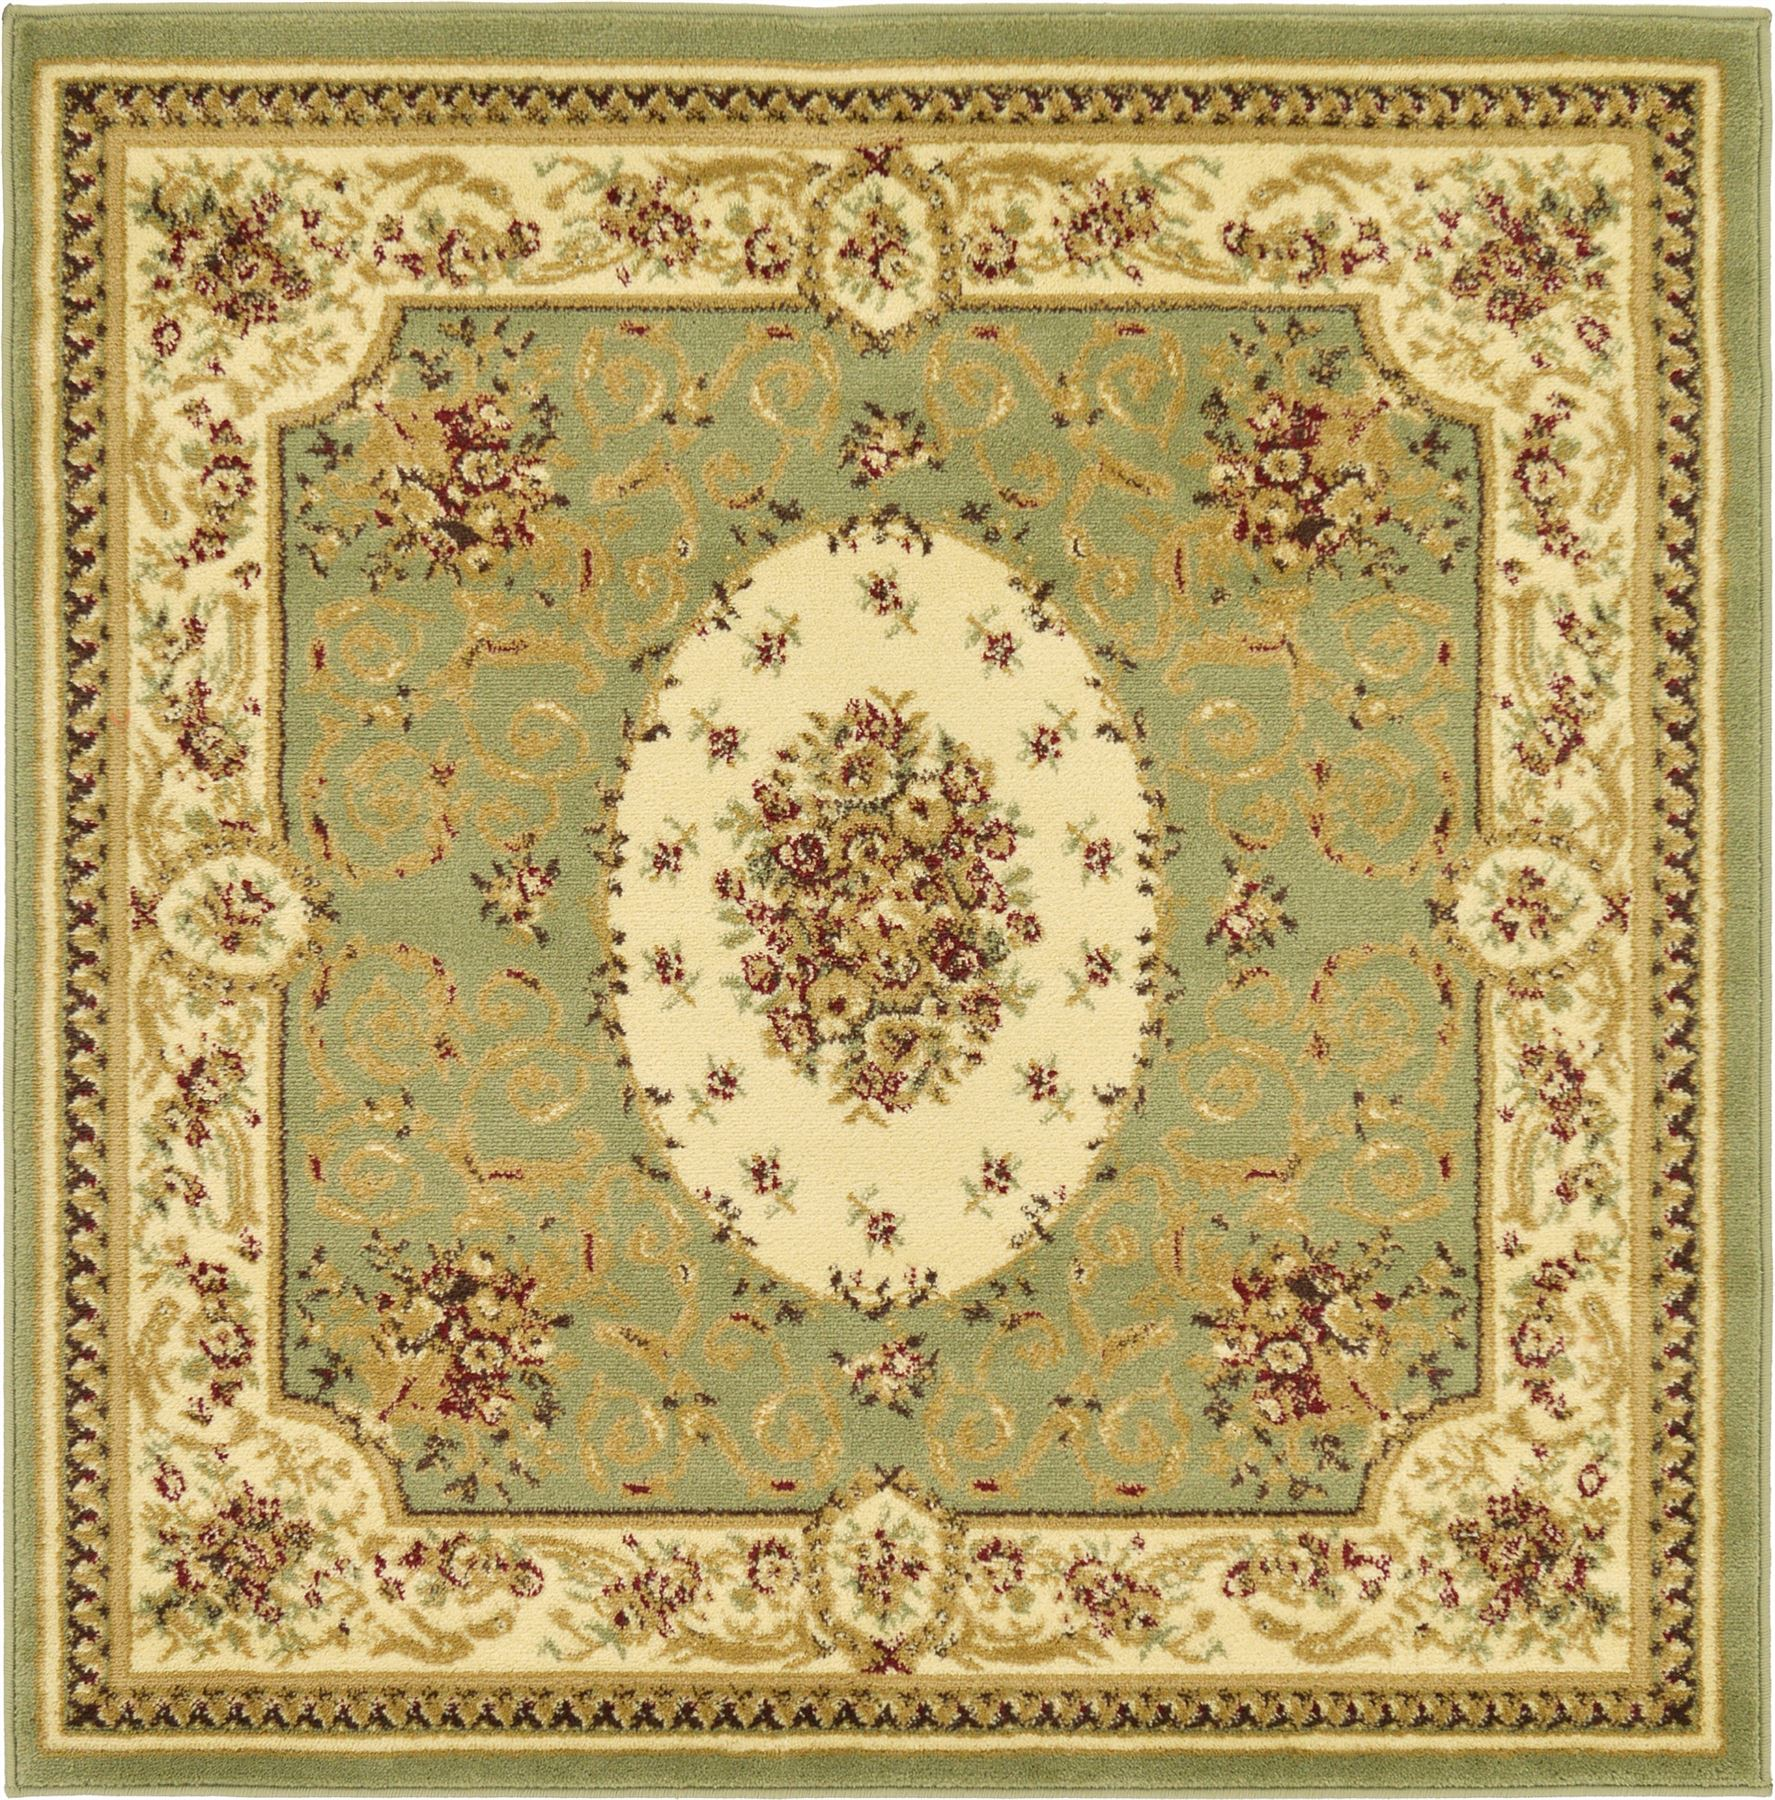 Oriental Rugs Out Of Style: Heritage Area Rug Oriental Carpet Country Style Traditonal